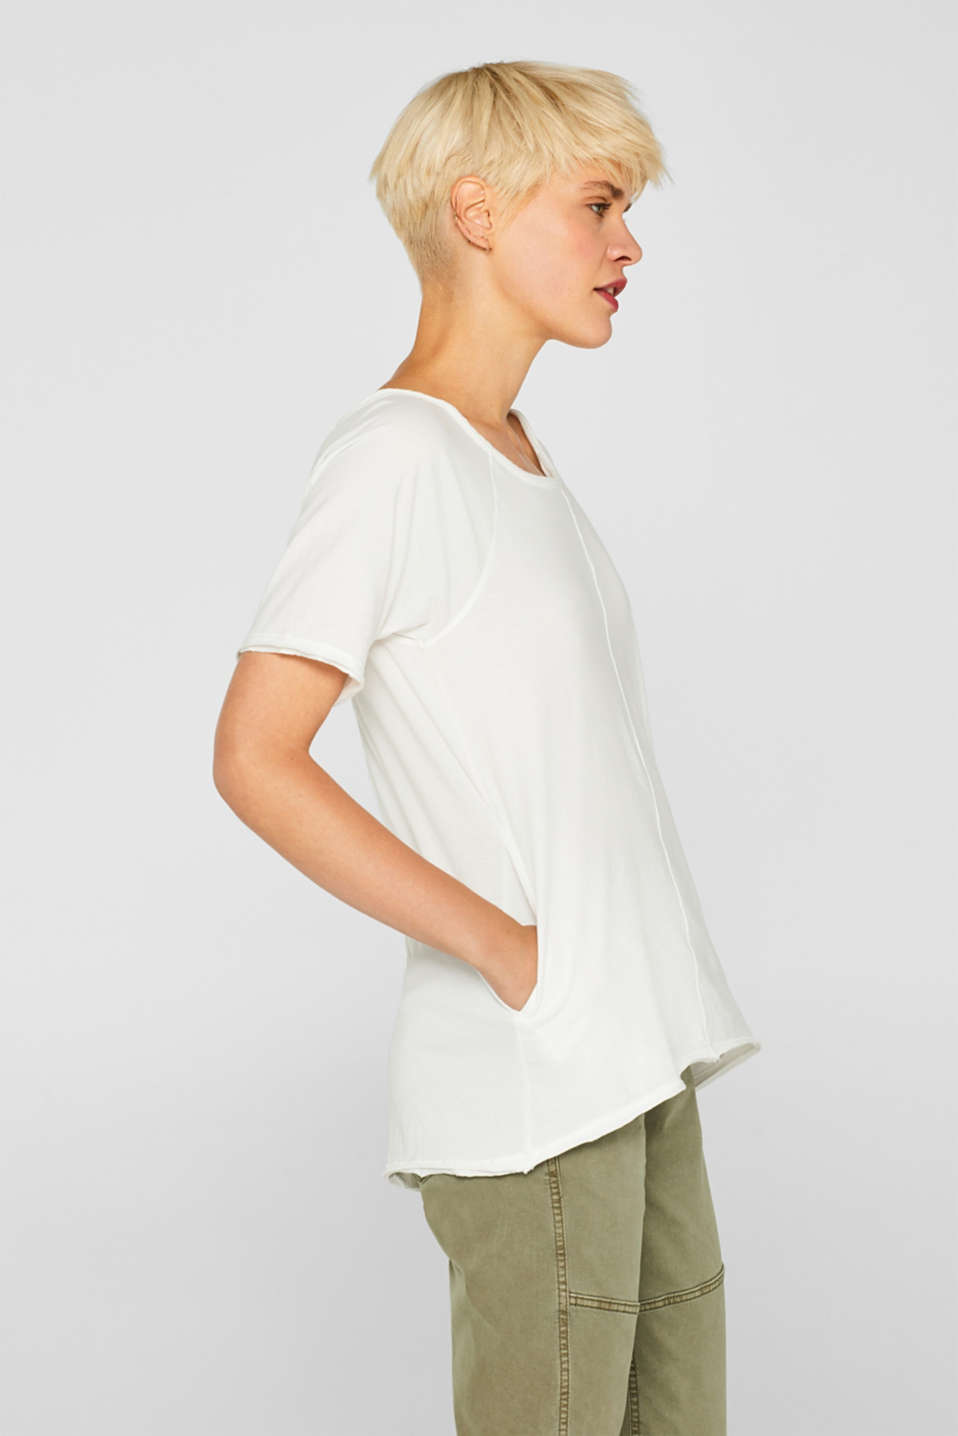 edc - T-shirt with slit pockets, 100% cotton